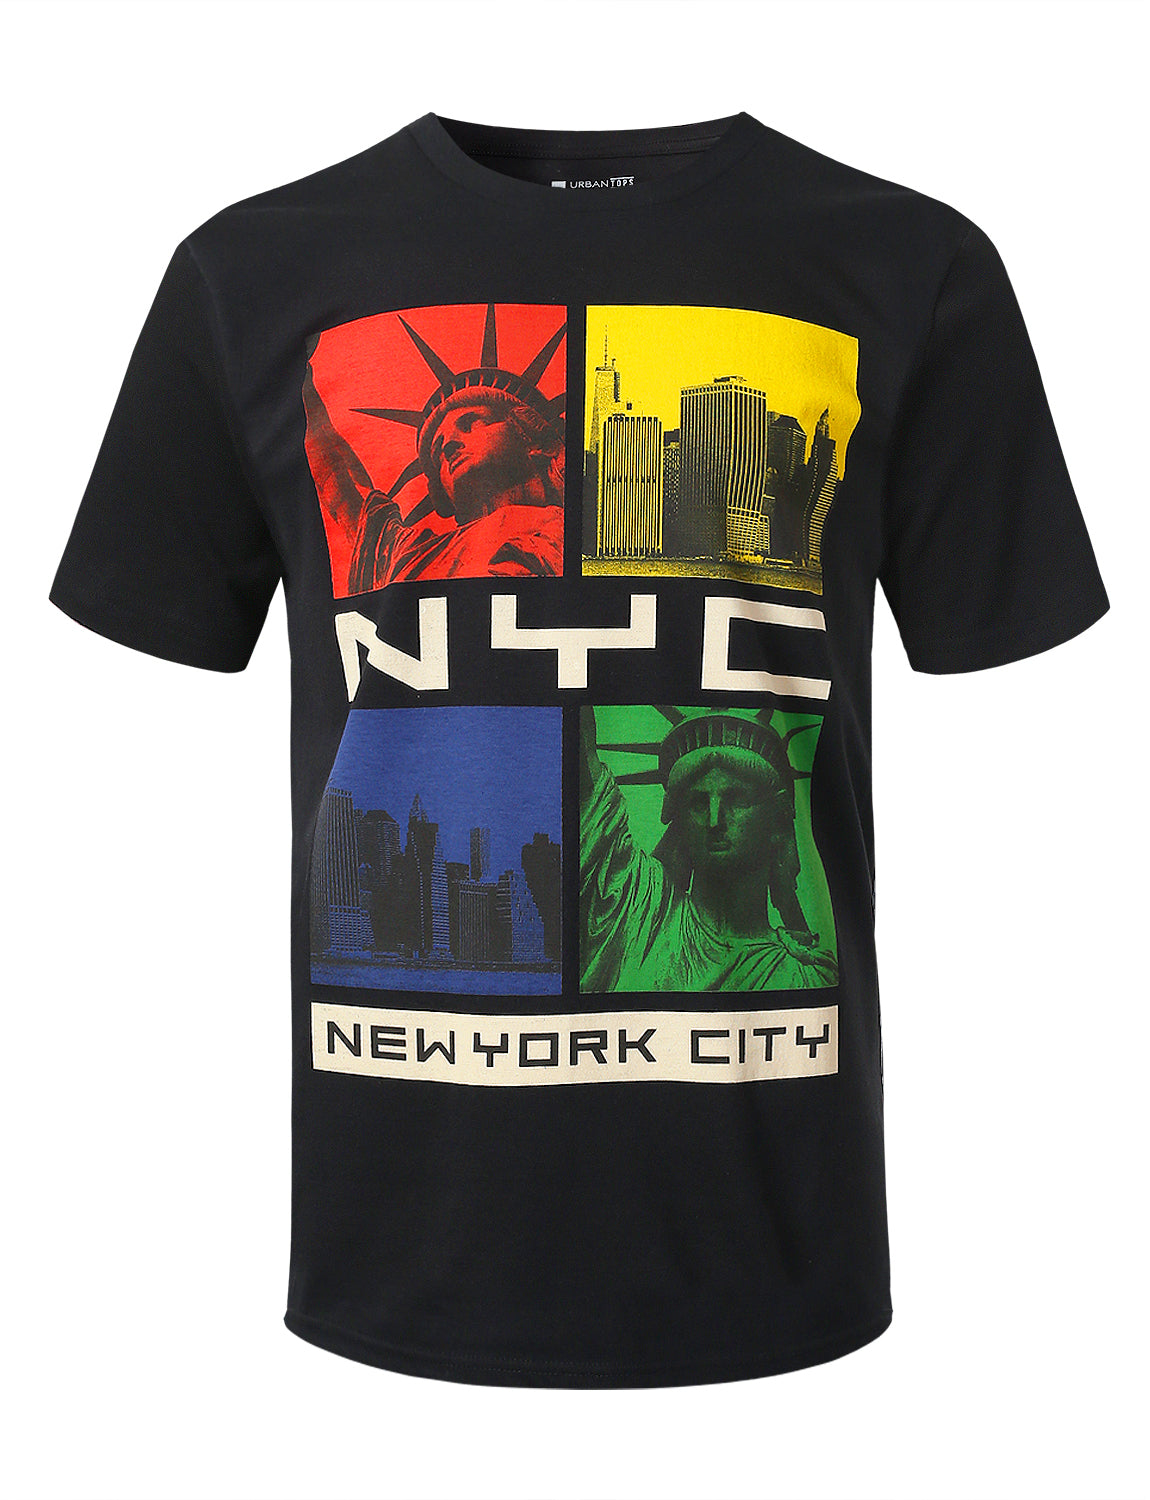 BLACK NYC Colorway Graphic Print T-shirt - URBANCREWS